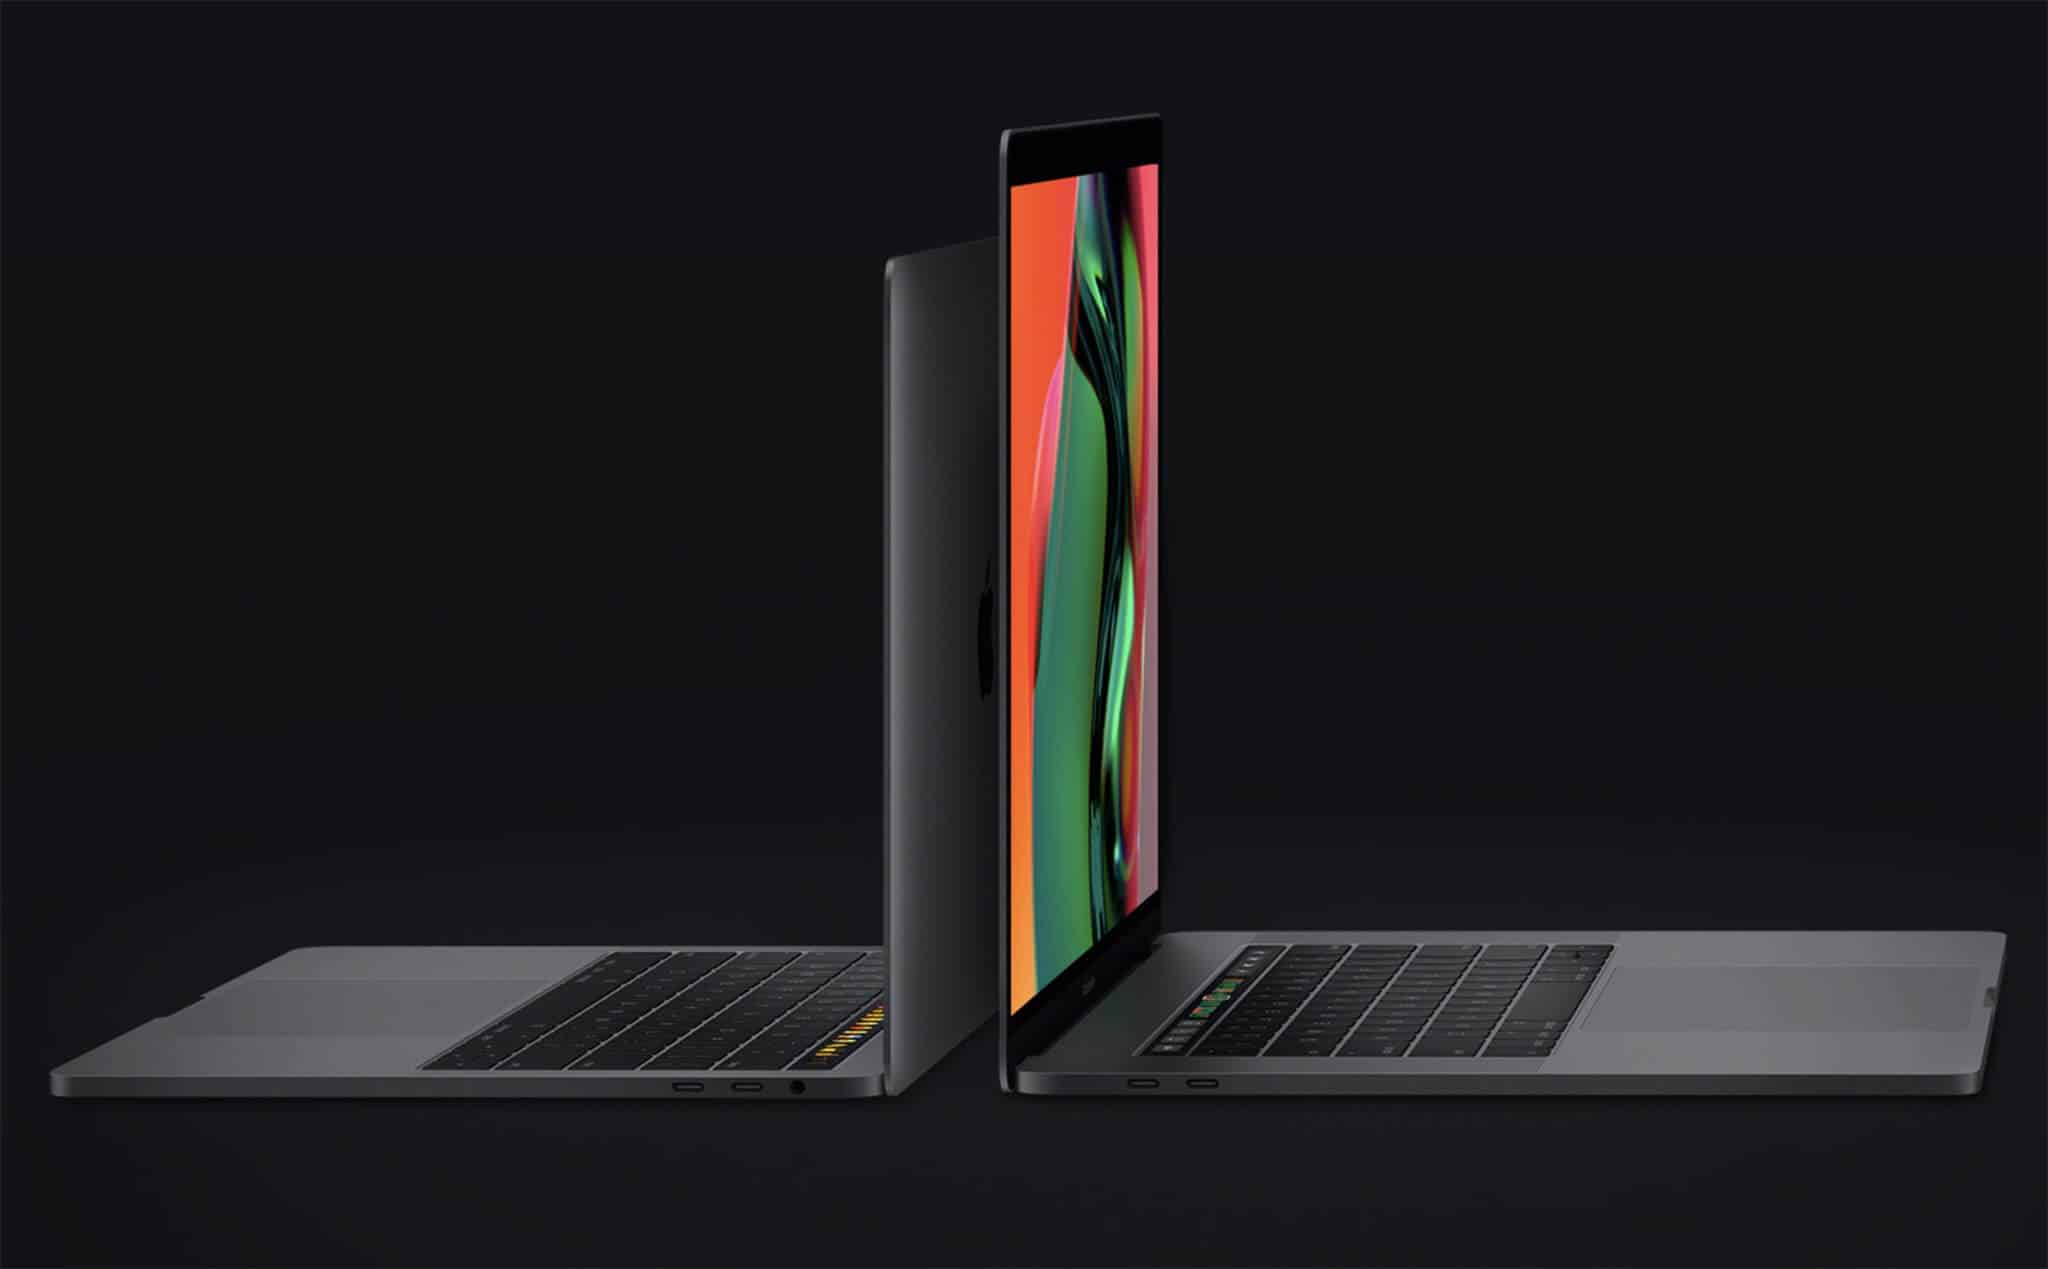 macbook pro mr9t2